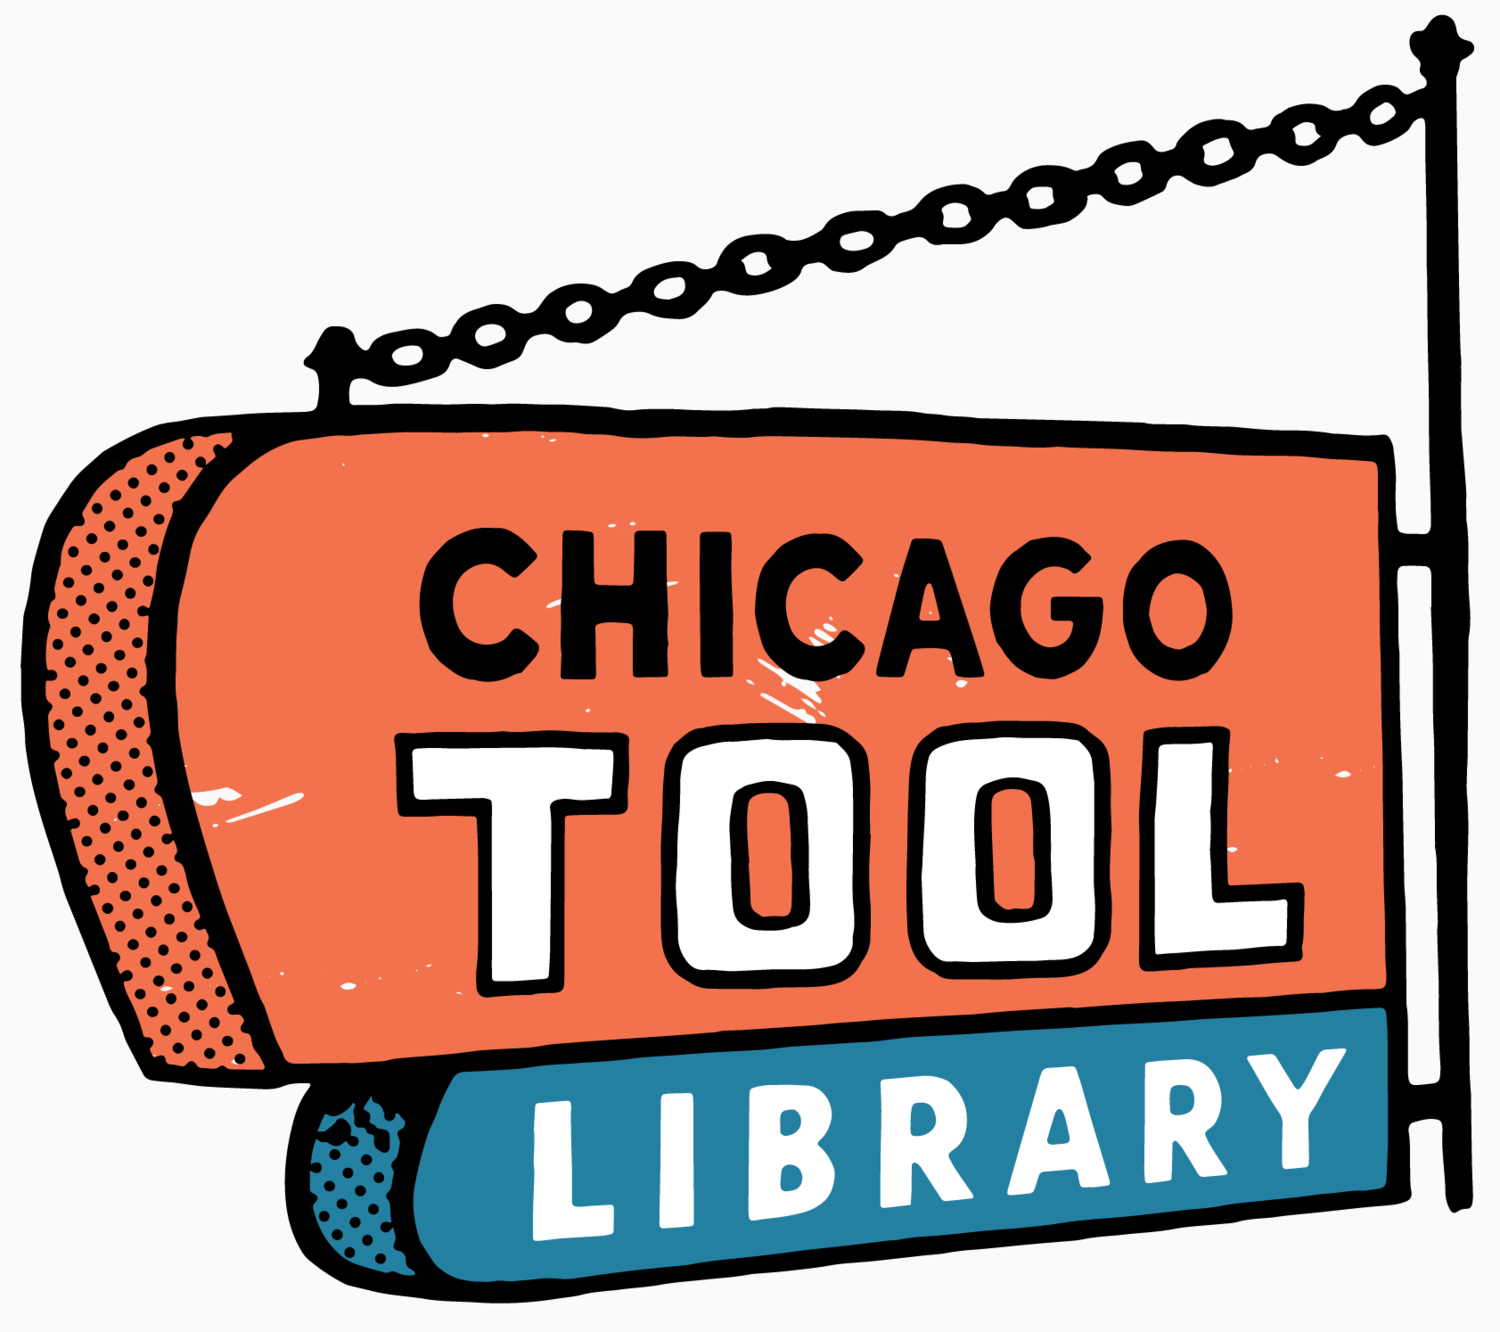 The Chicago Tool Library